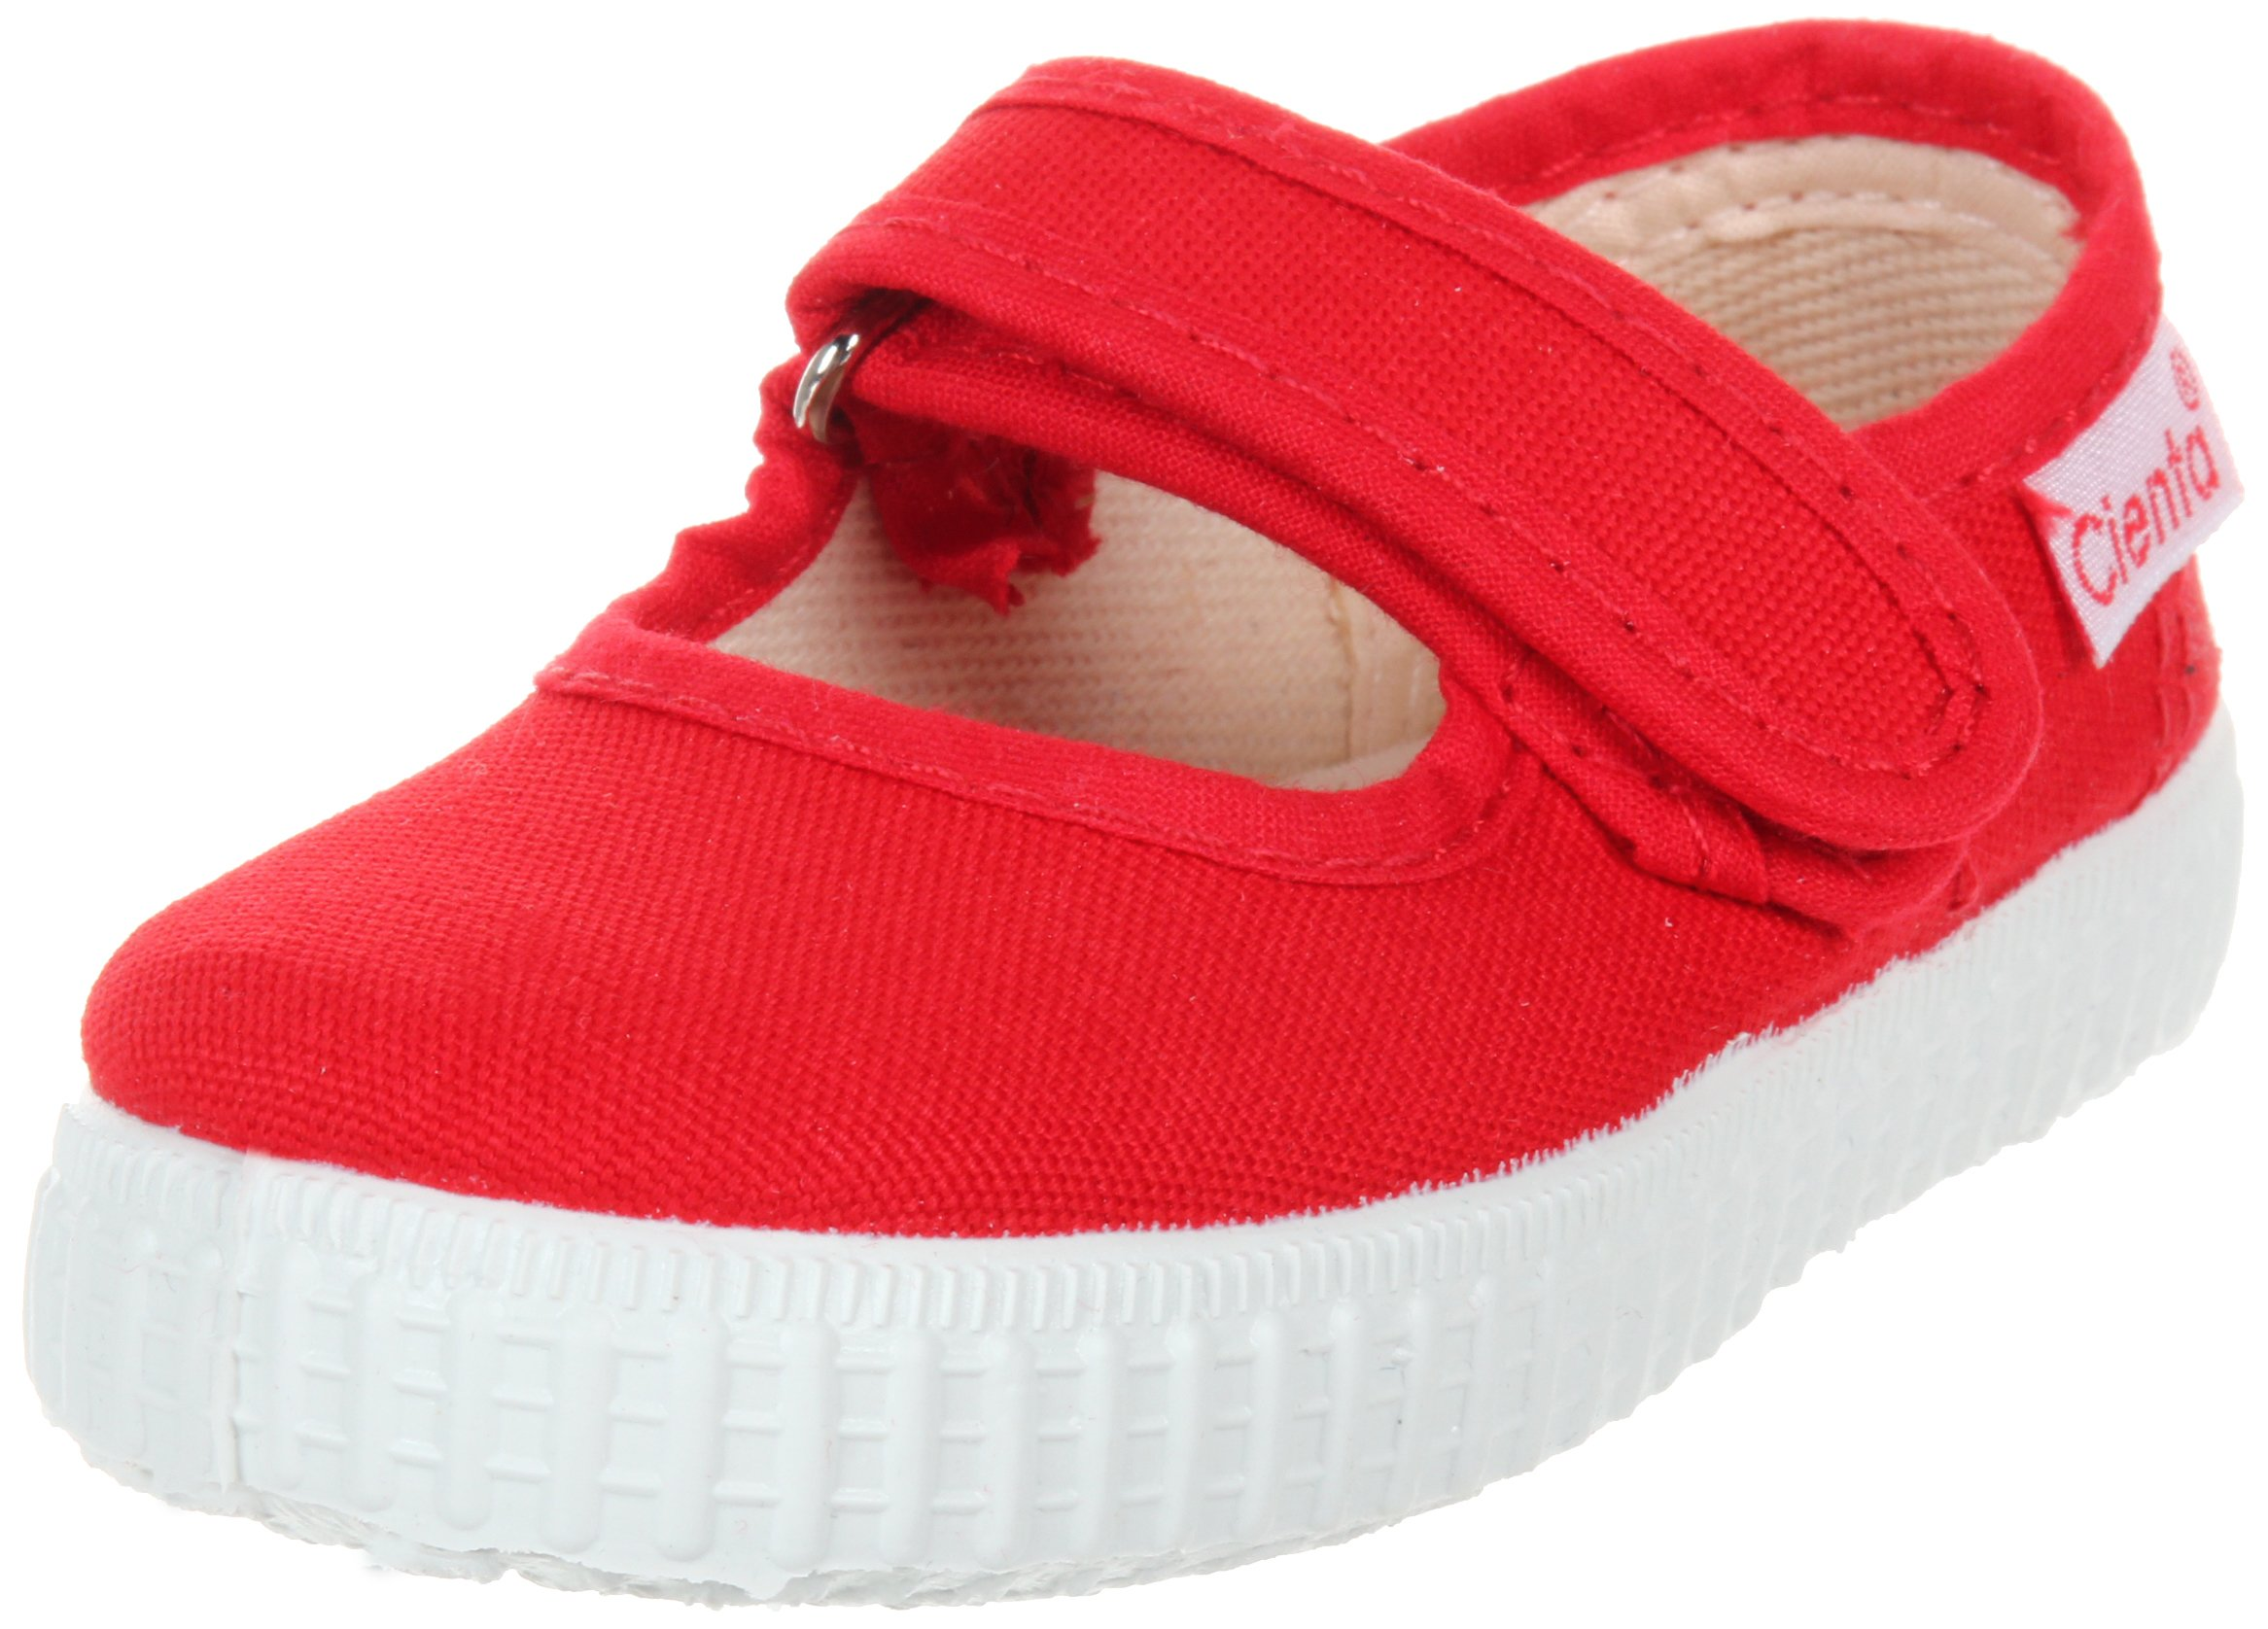 Cienta Mary Jane Sneakers for Girls – Red Casual Shoes with Adjustable Strap, 23 EU (6.5 M US Toddler)